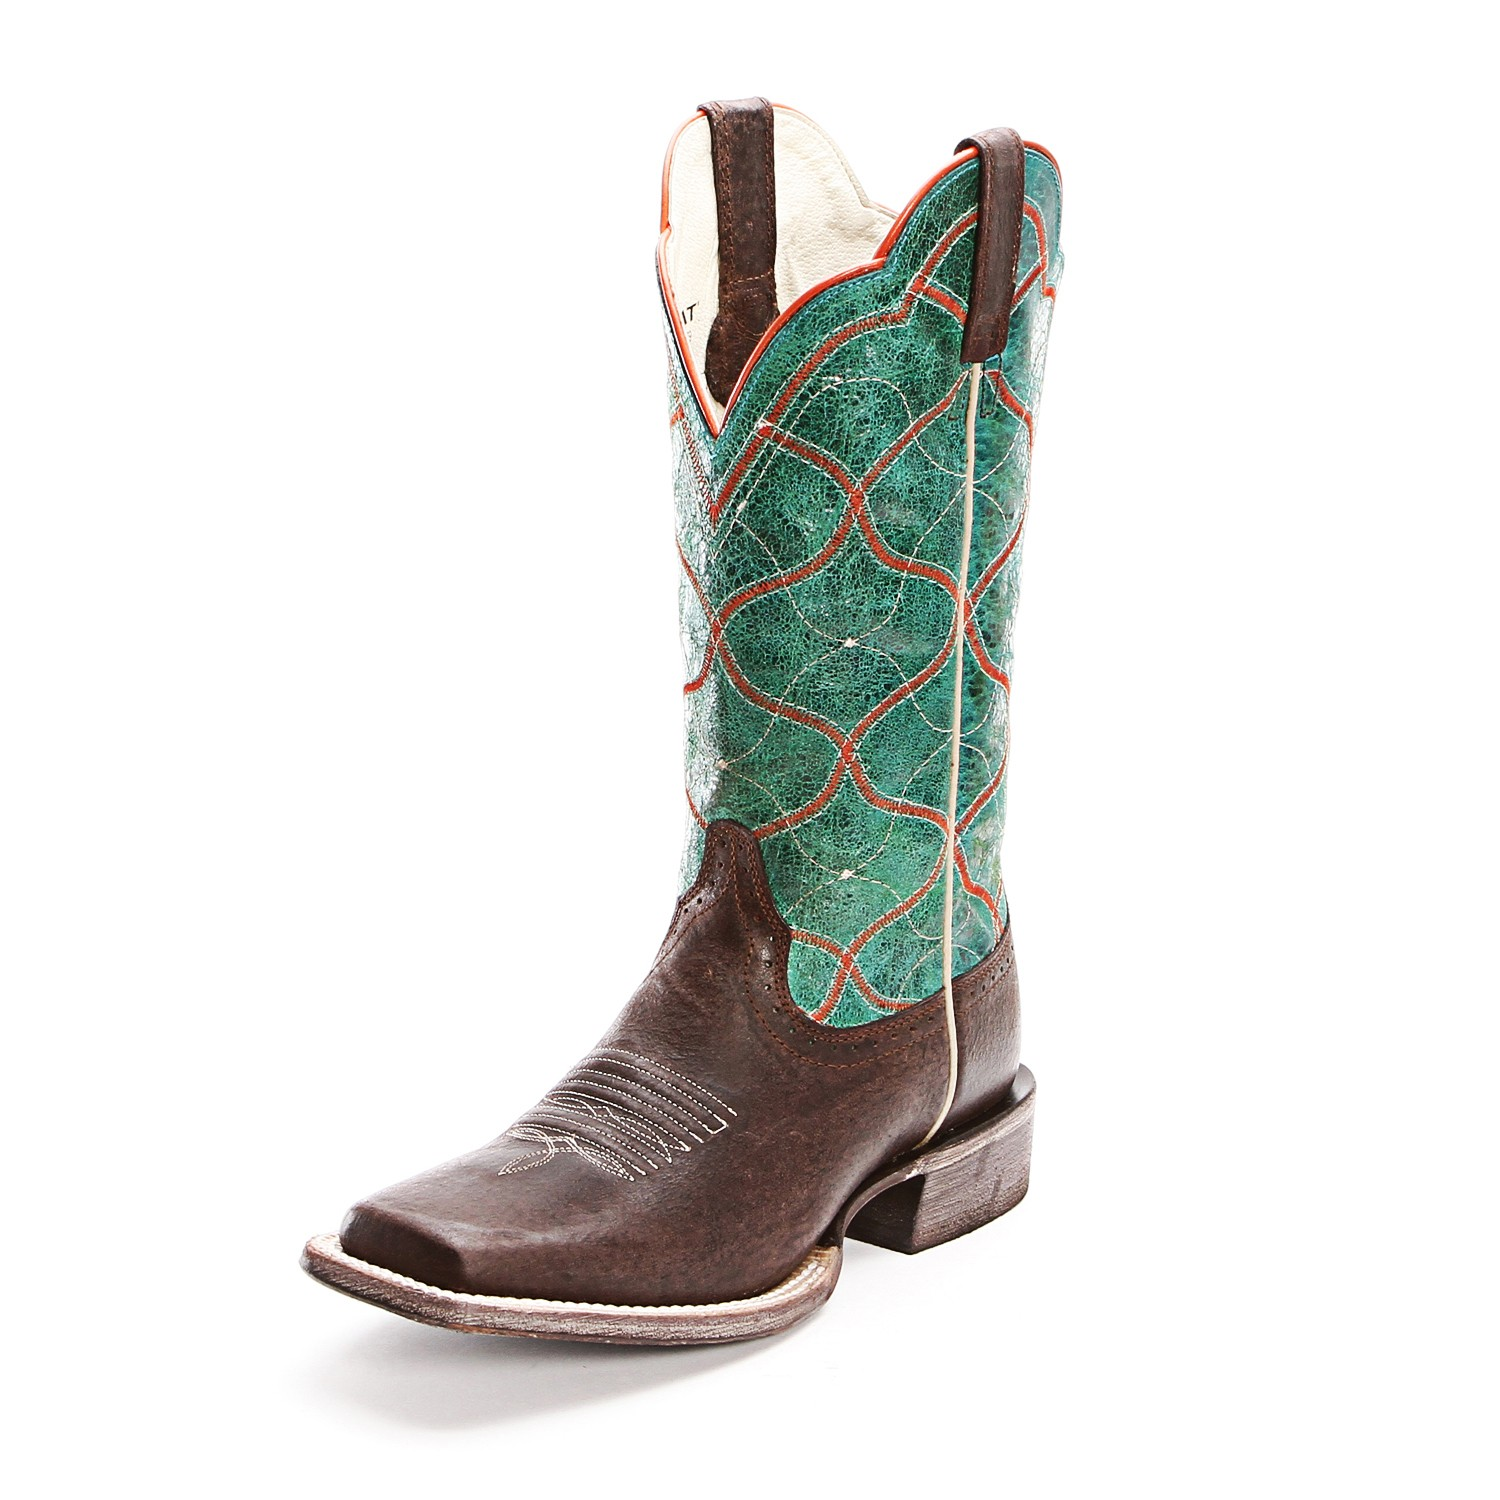 Ariat Fatbaby Boots Sale - Boot Yc